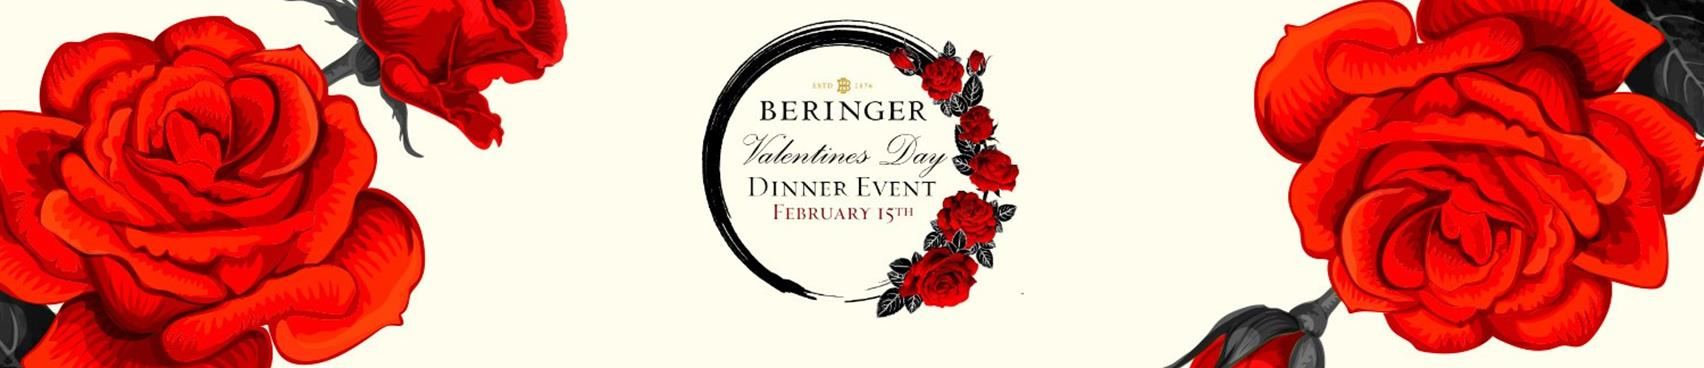 Purchase Tickets to Valentine's Day Dinner-2020 at Beringer Vineyards on CellarPass